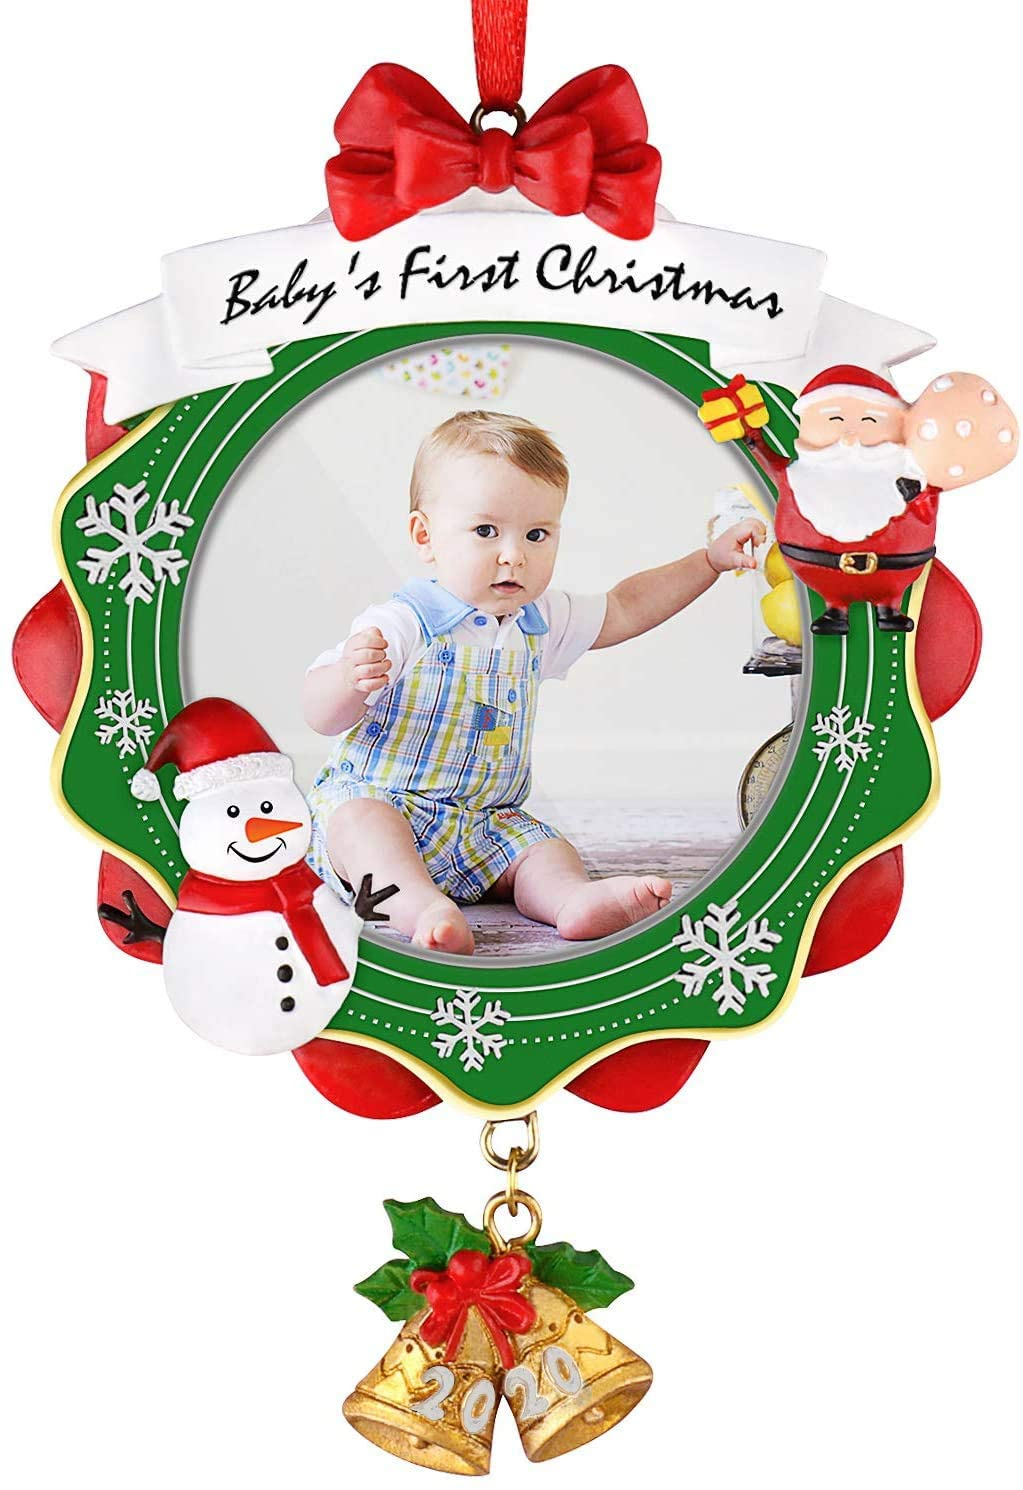 Baby's First Christmas Picture Frame, Chrismas Ornament 2020 Year Dated, My Very First Christmas Baby Photo Frame, Picture Frame, Personalized